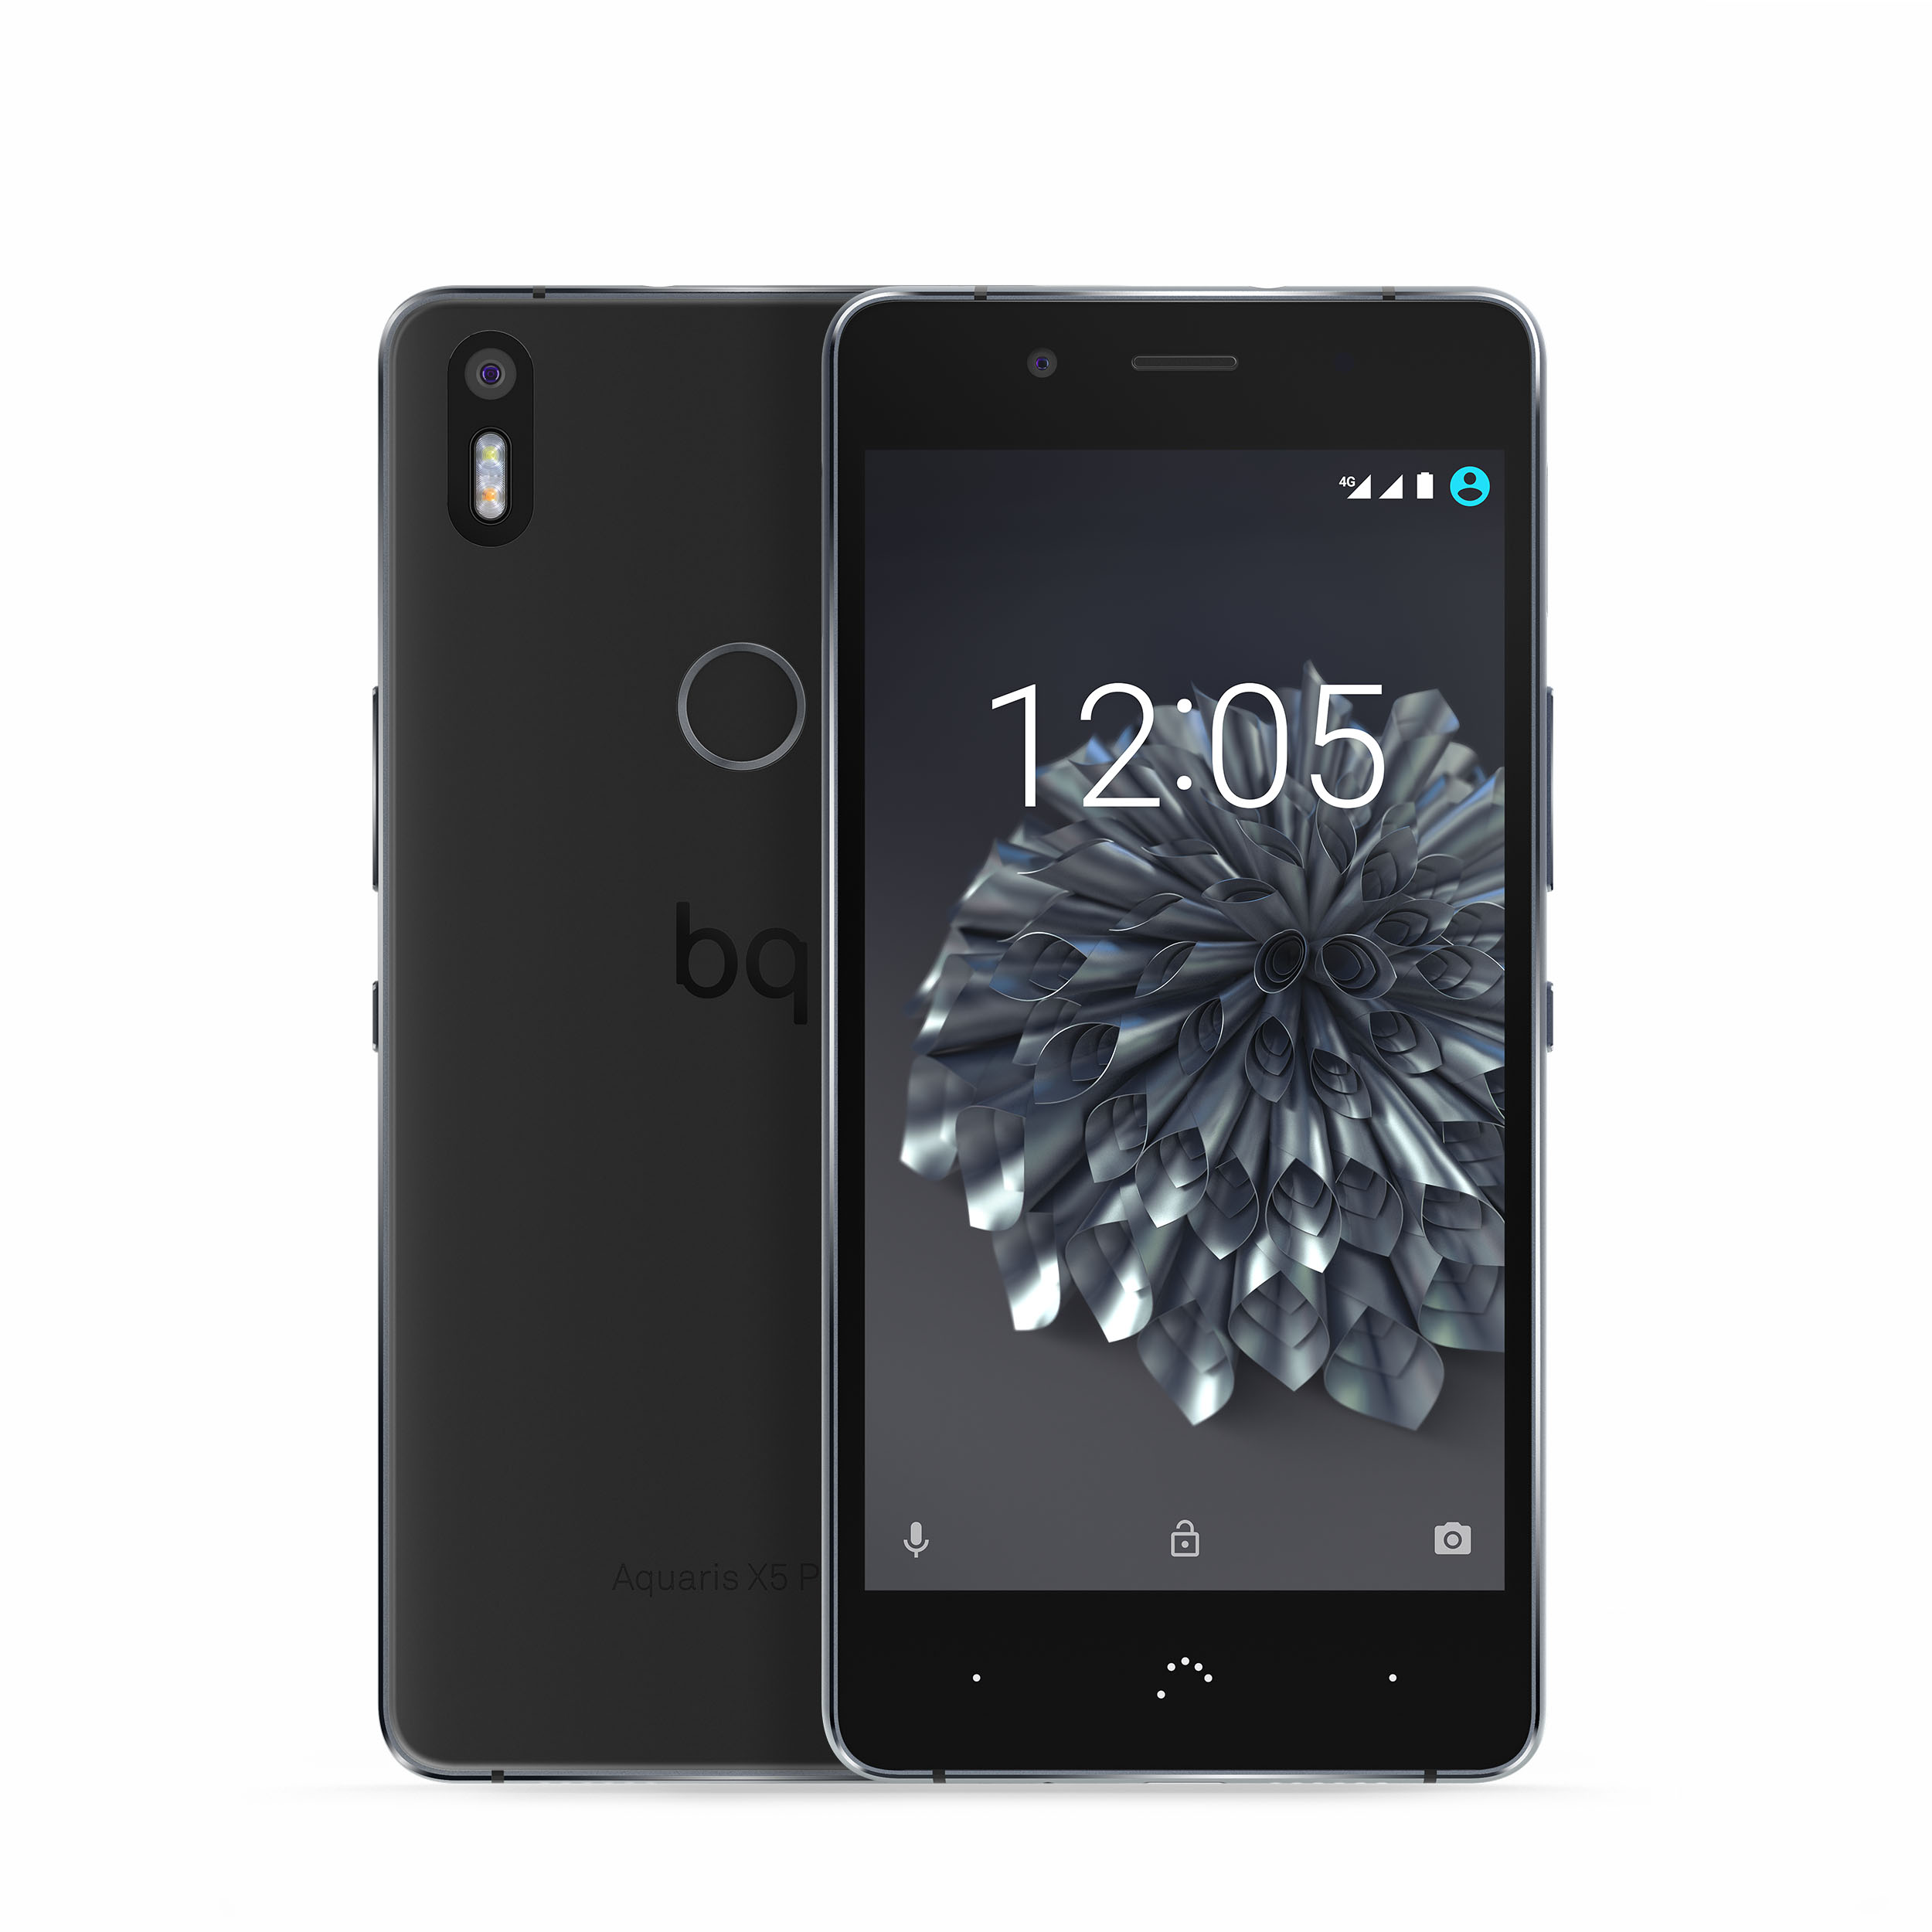 BQ AQUARIS X5 PLUS VS IPHONE